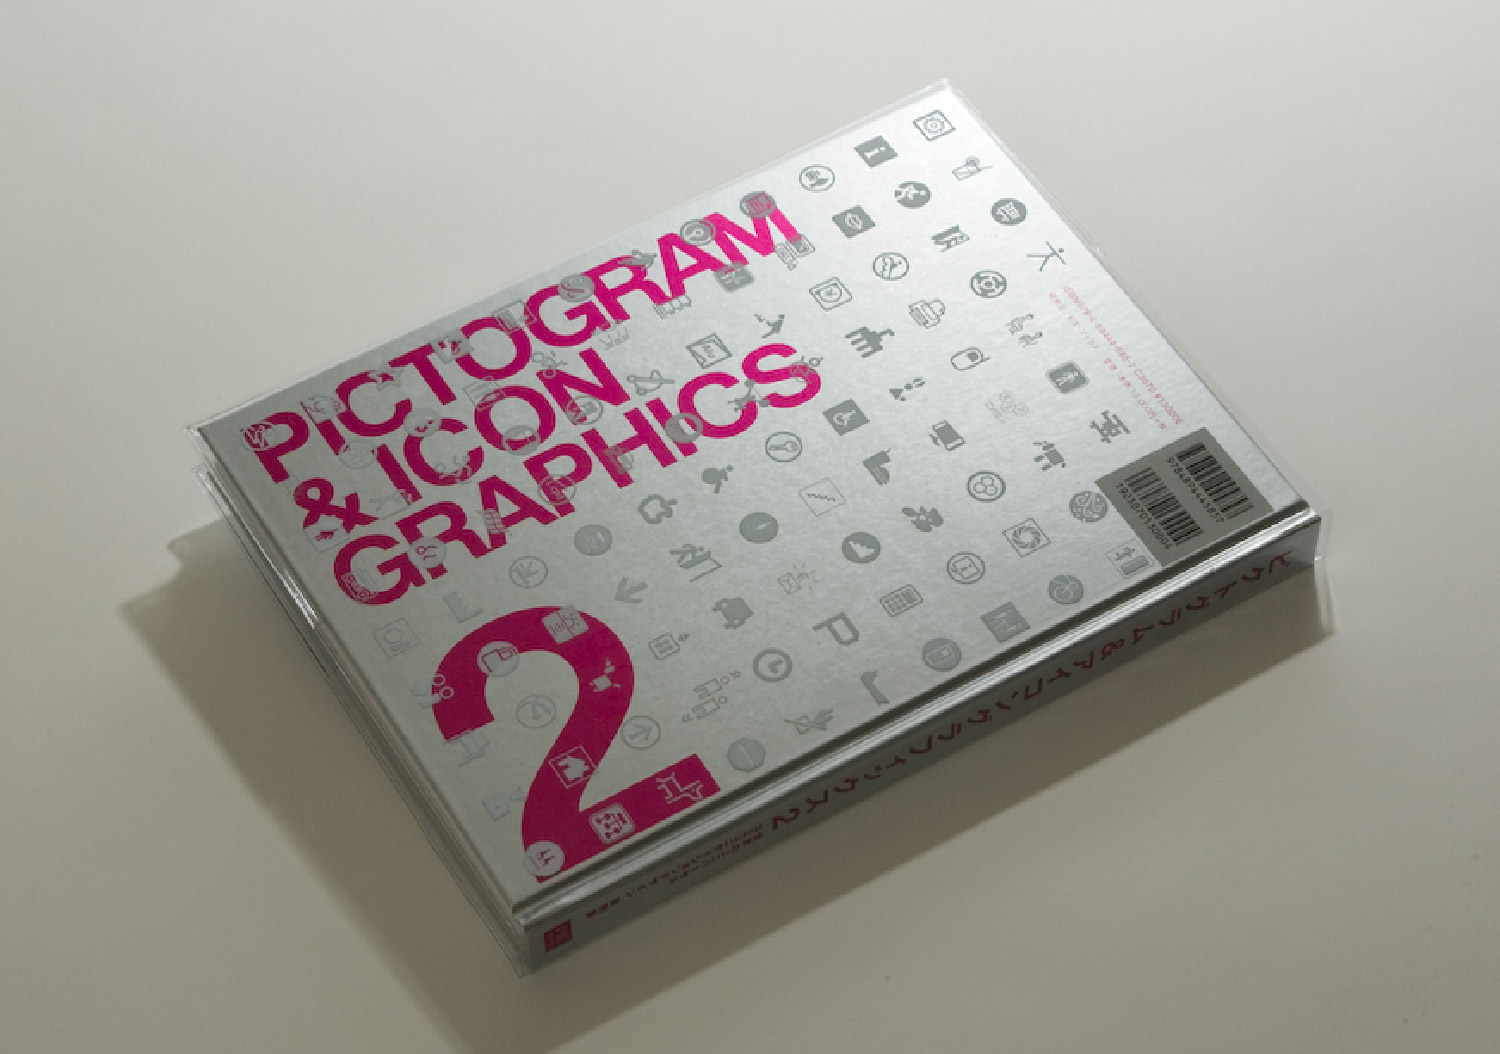 PICTOGRAM & ICON GRAPHICS 2_2